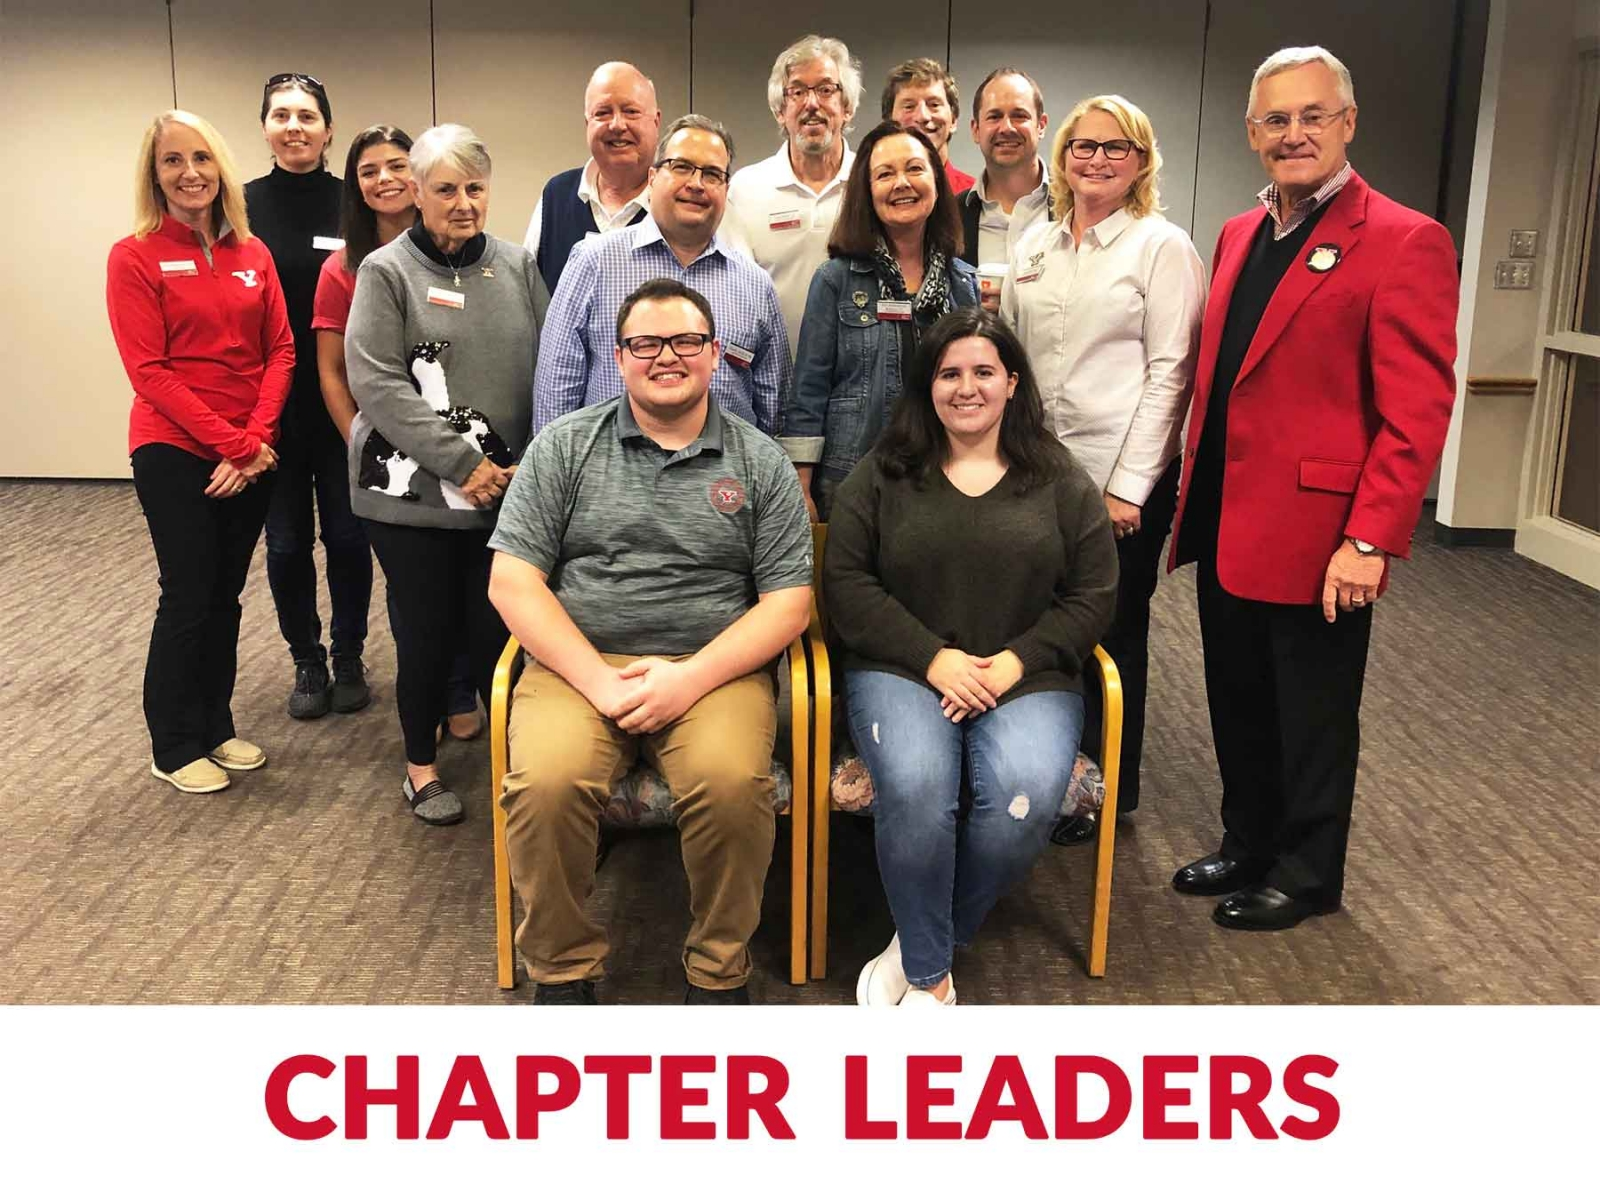 chapter Leaders